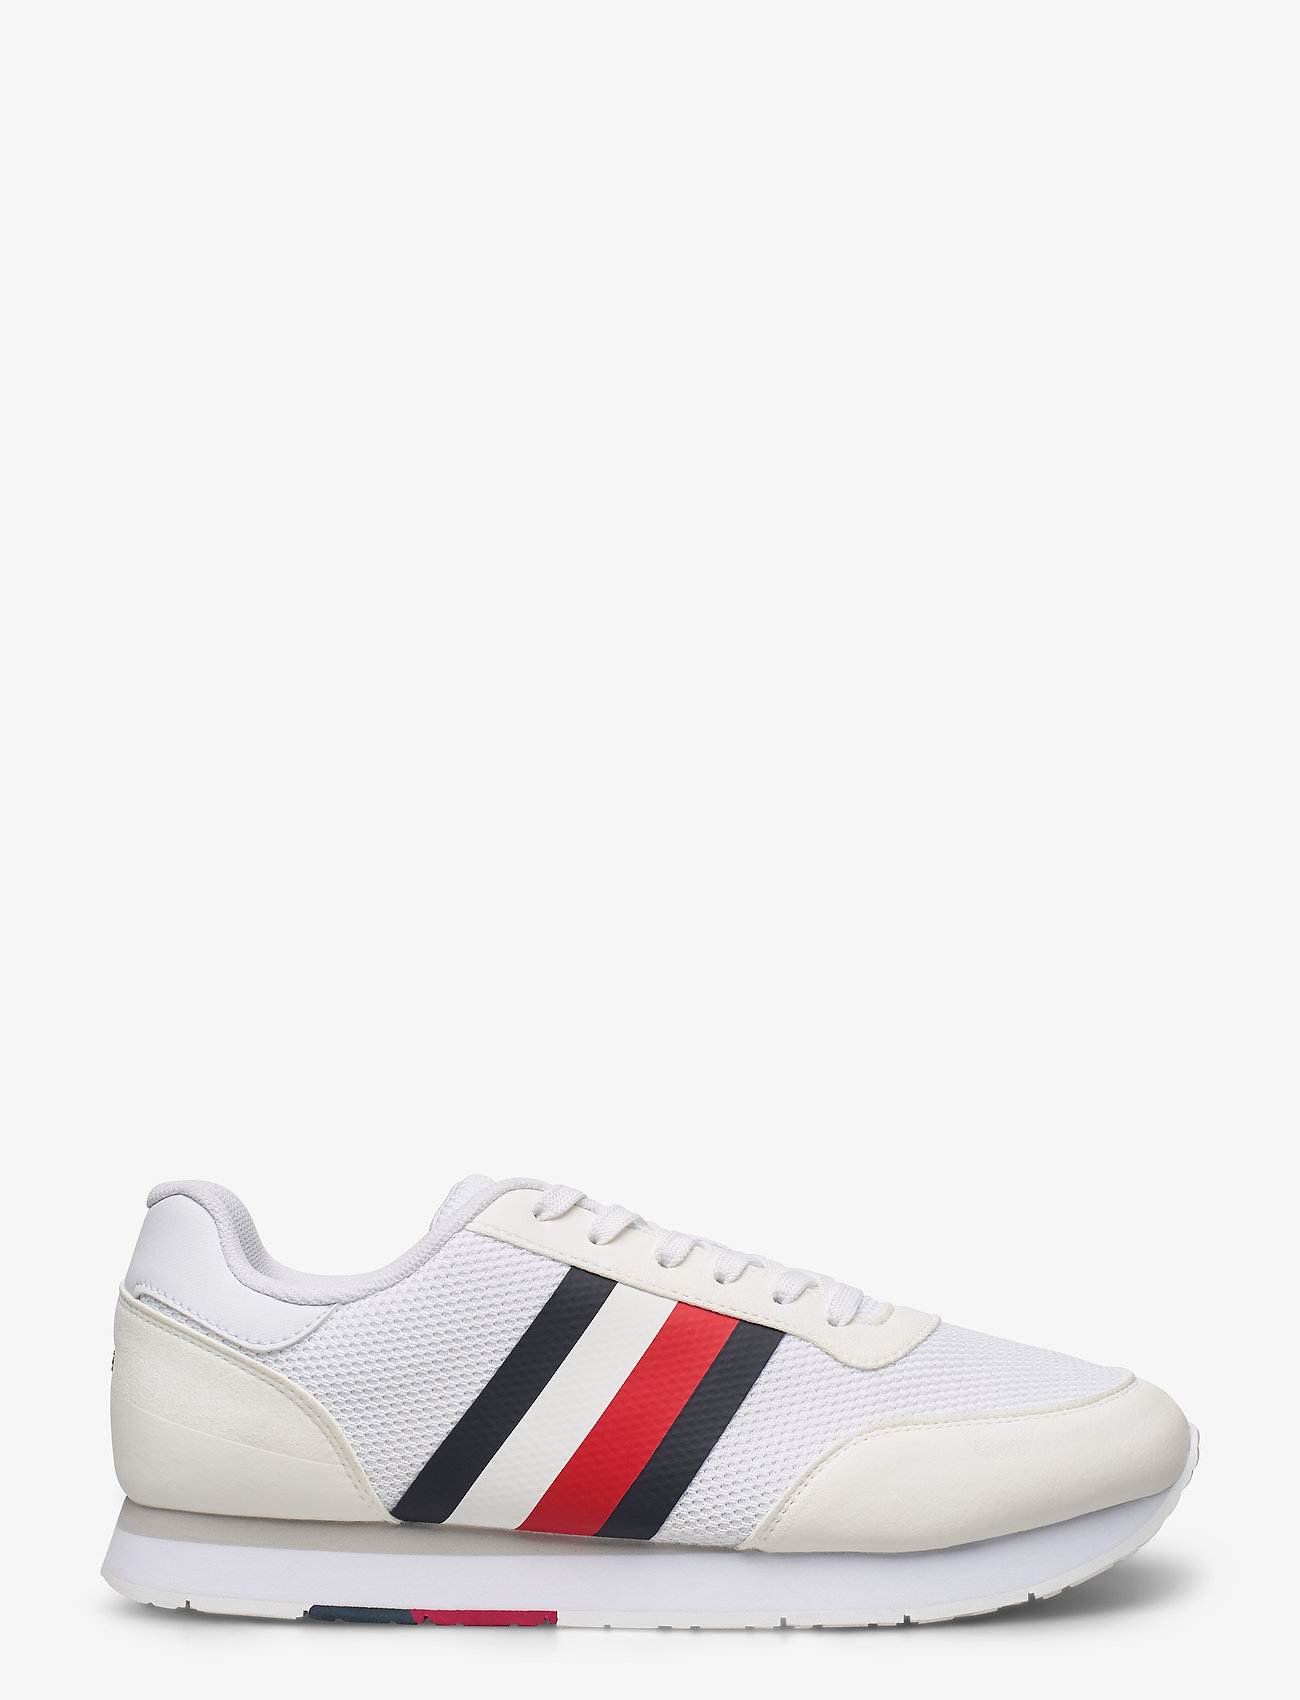 Tommy Hilfiger - CORPORATE MATERIAL MIX RUNNER - low top sneakers - white - 1